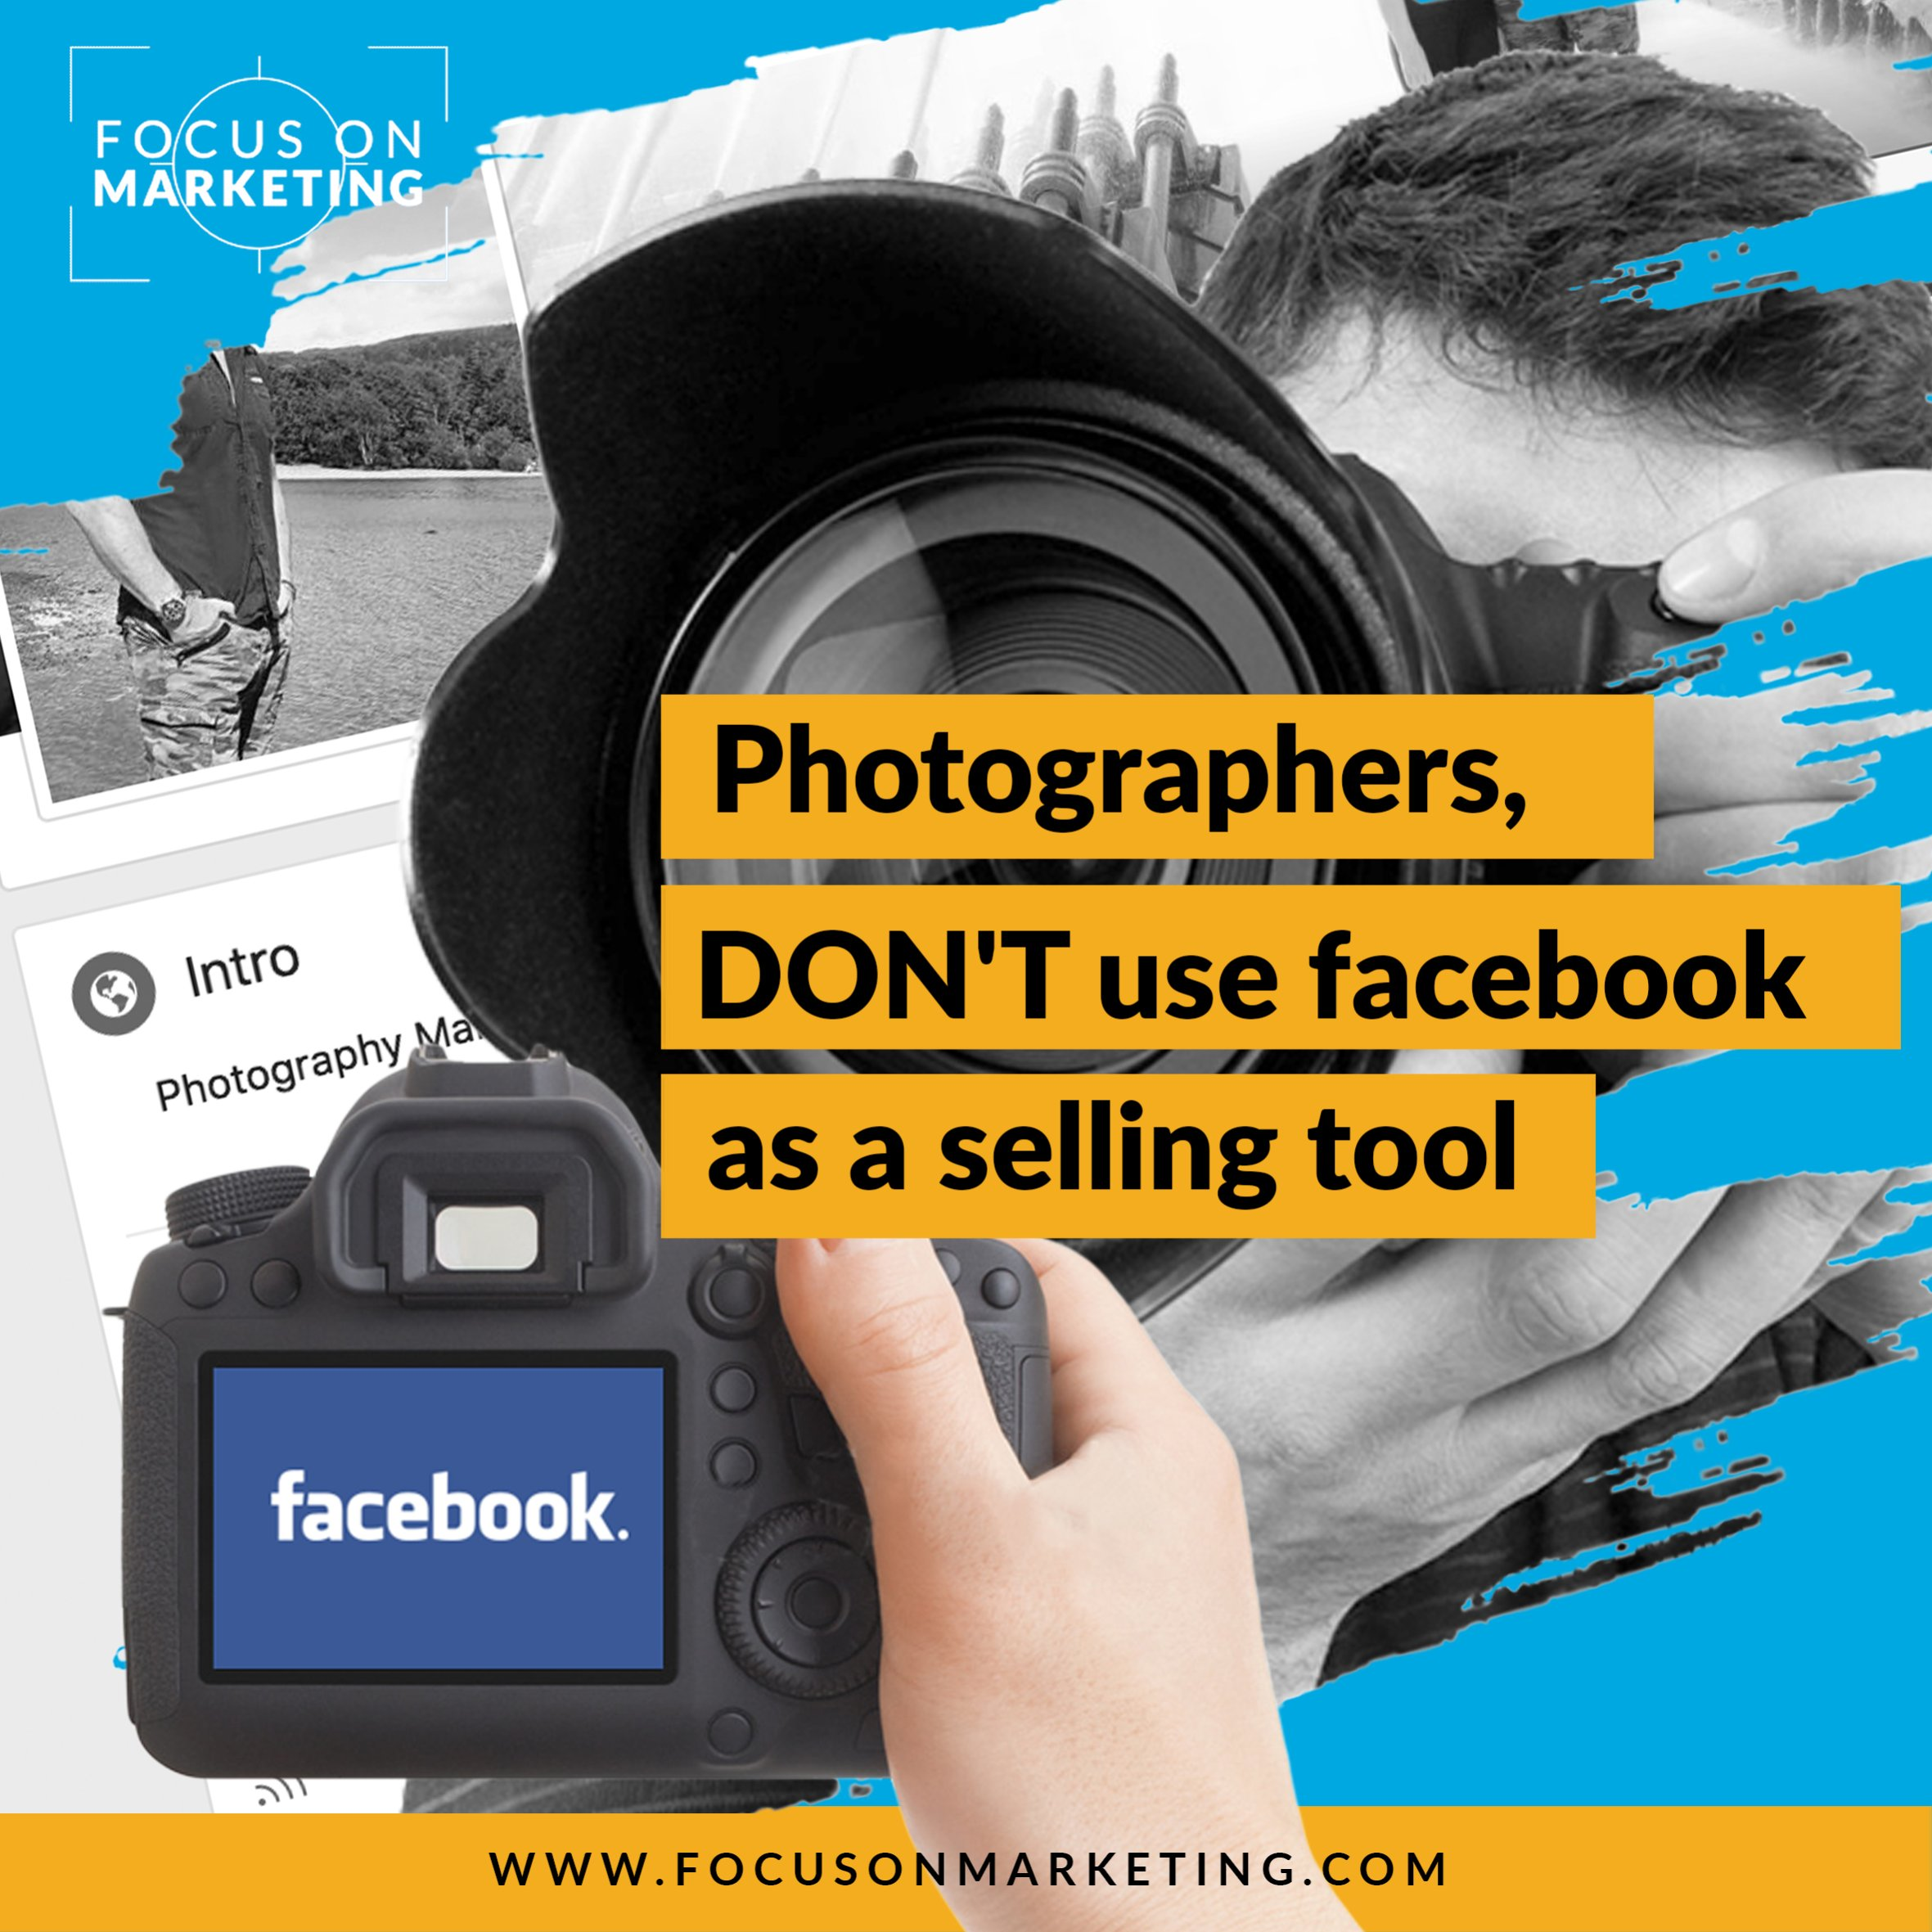 Too Many Photographers use Facebook as a Selling Tool